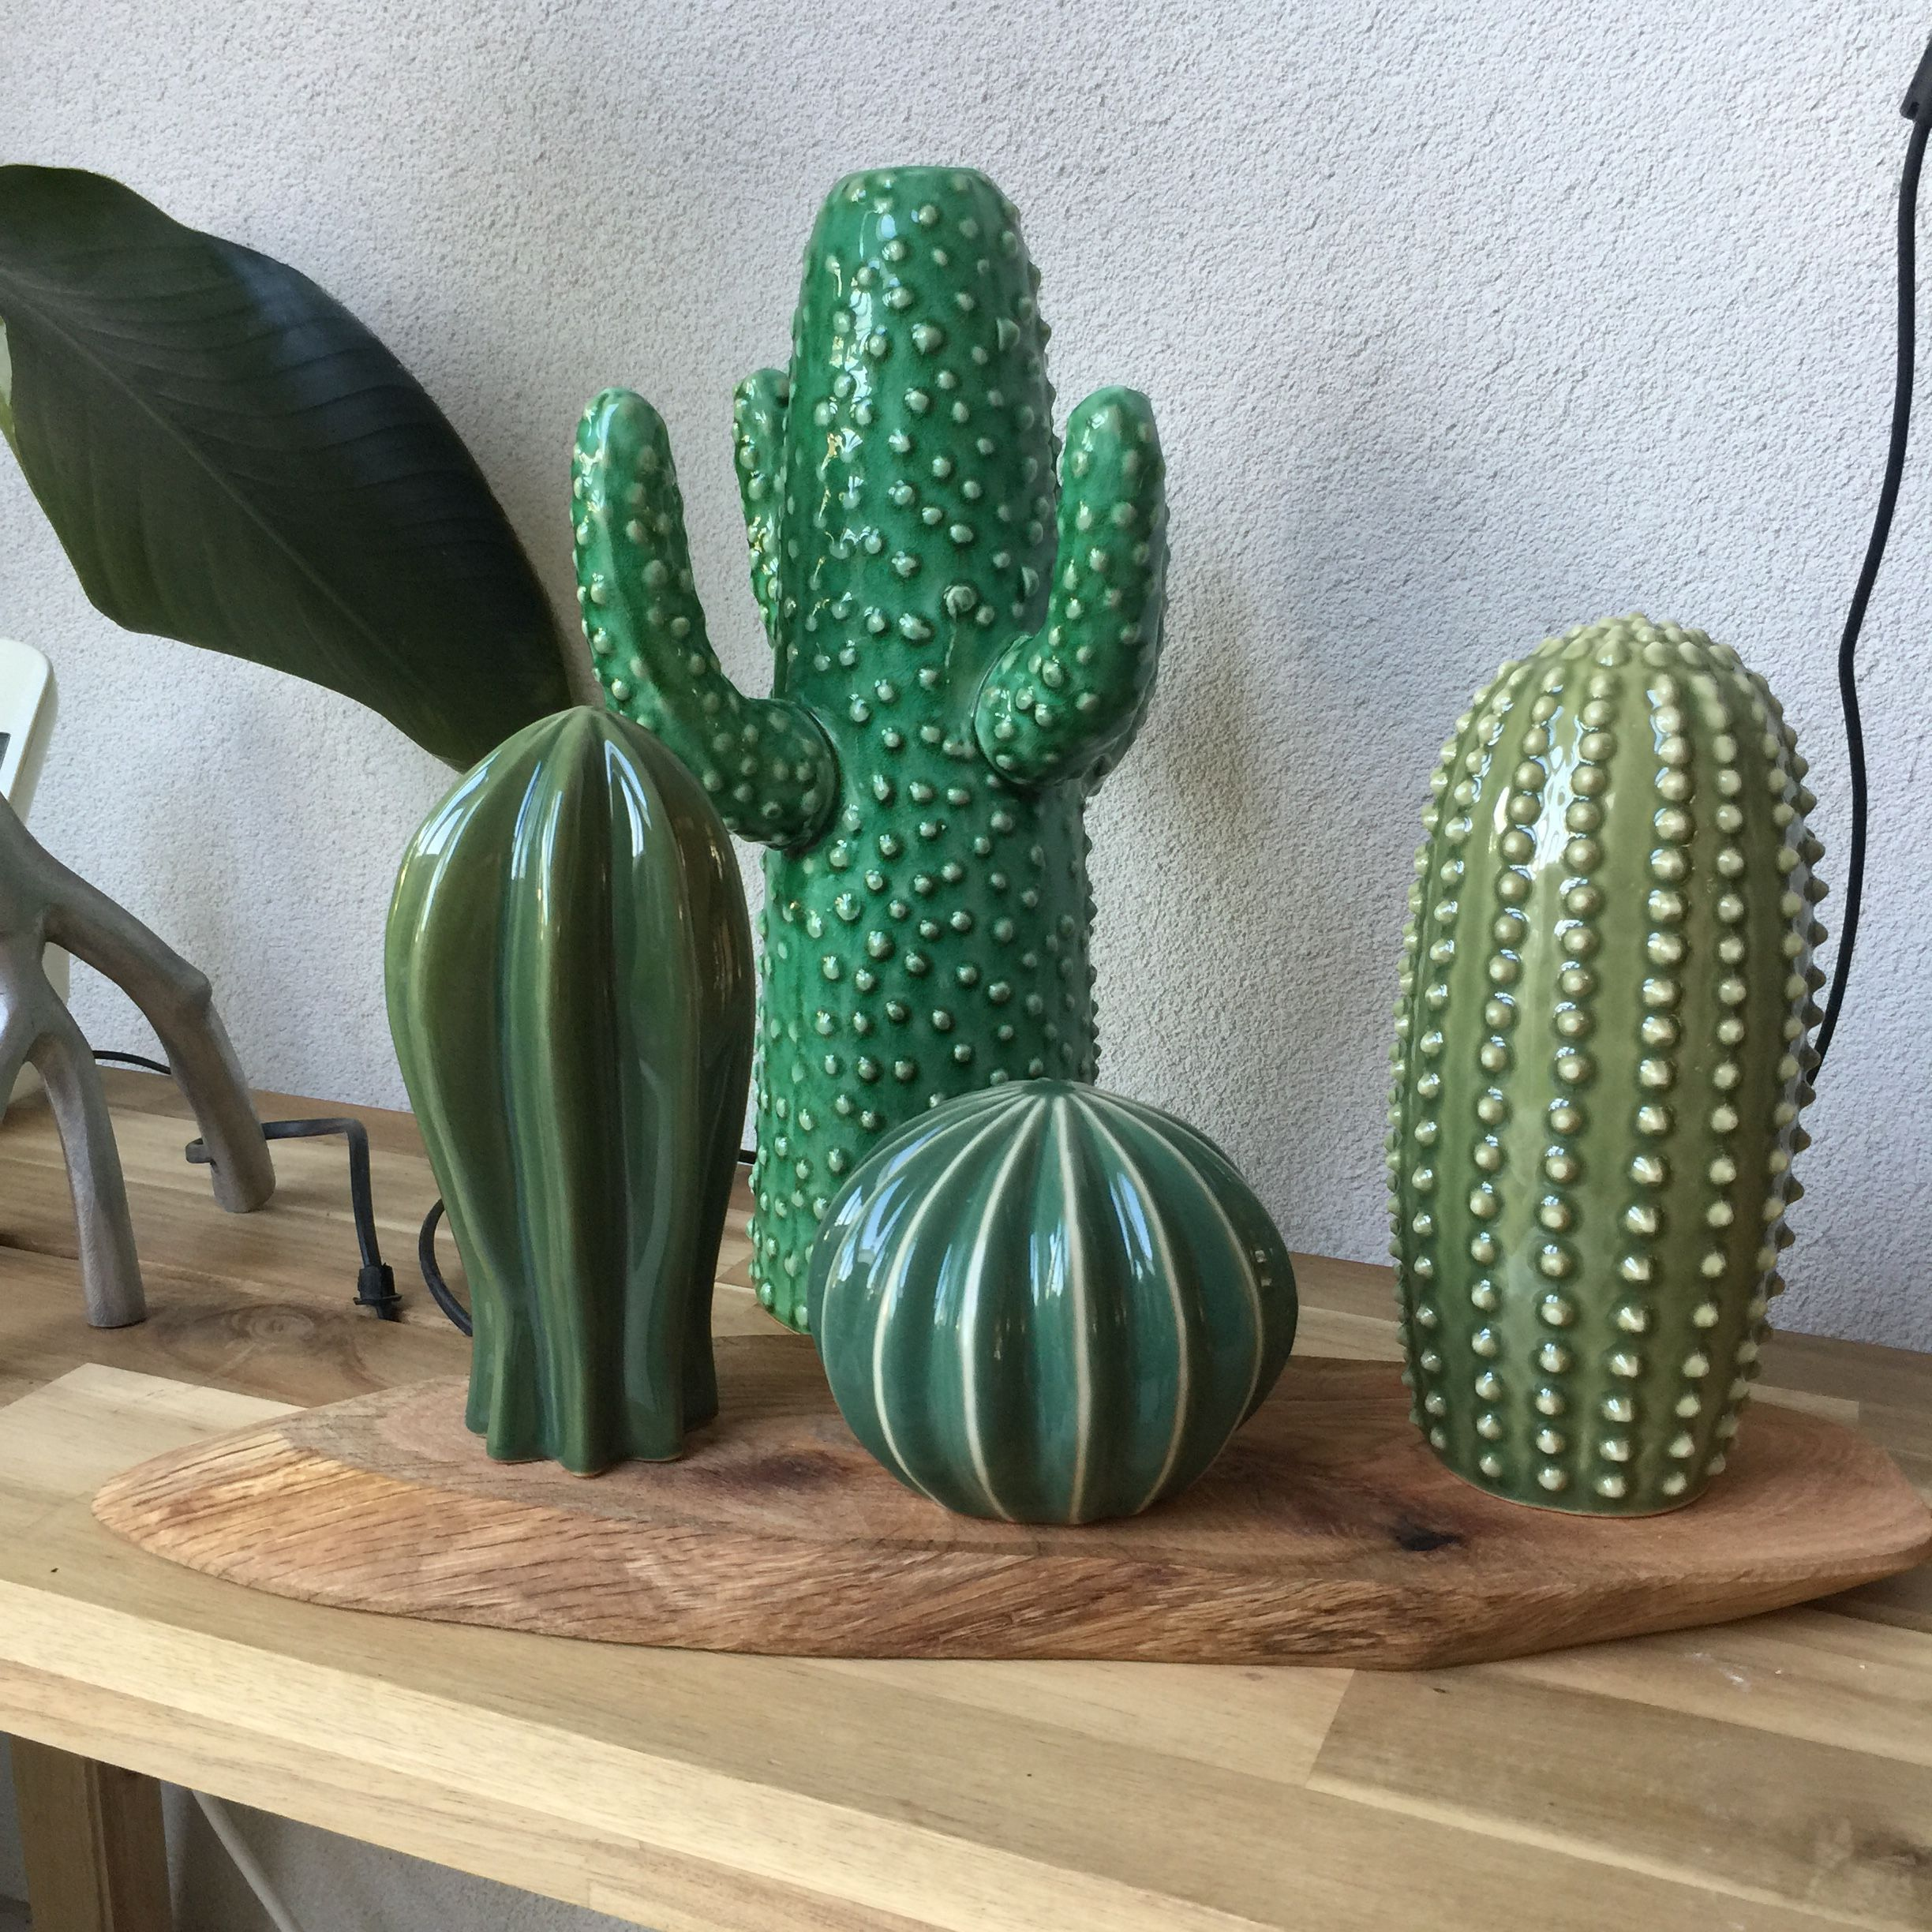 Cactus Porselein Ceramic Cactus Ikea My Beautiful Home Pinterest Hem